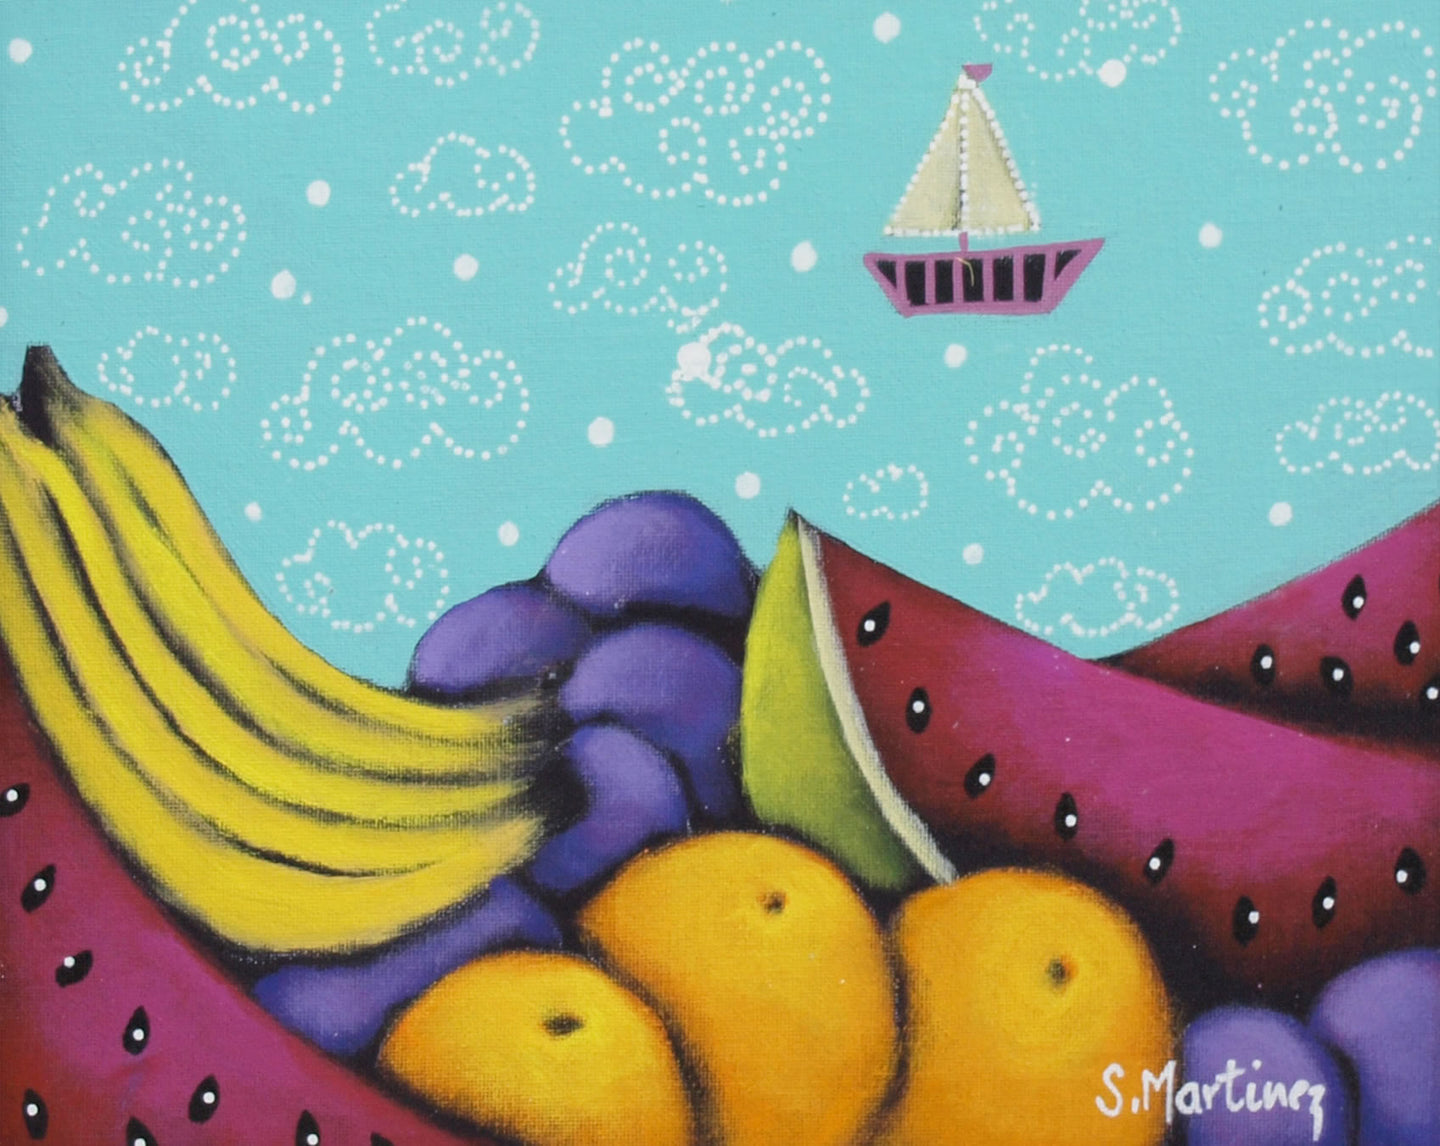 Las Frutas del Mar By Socorro Martinez